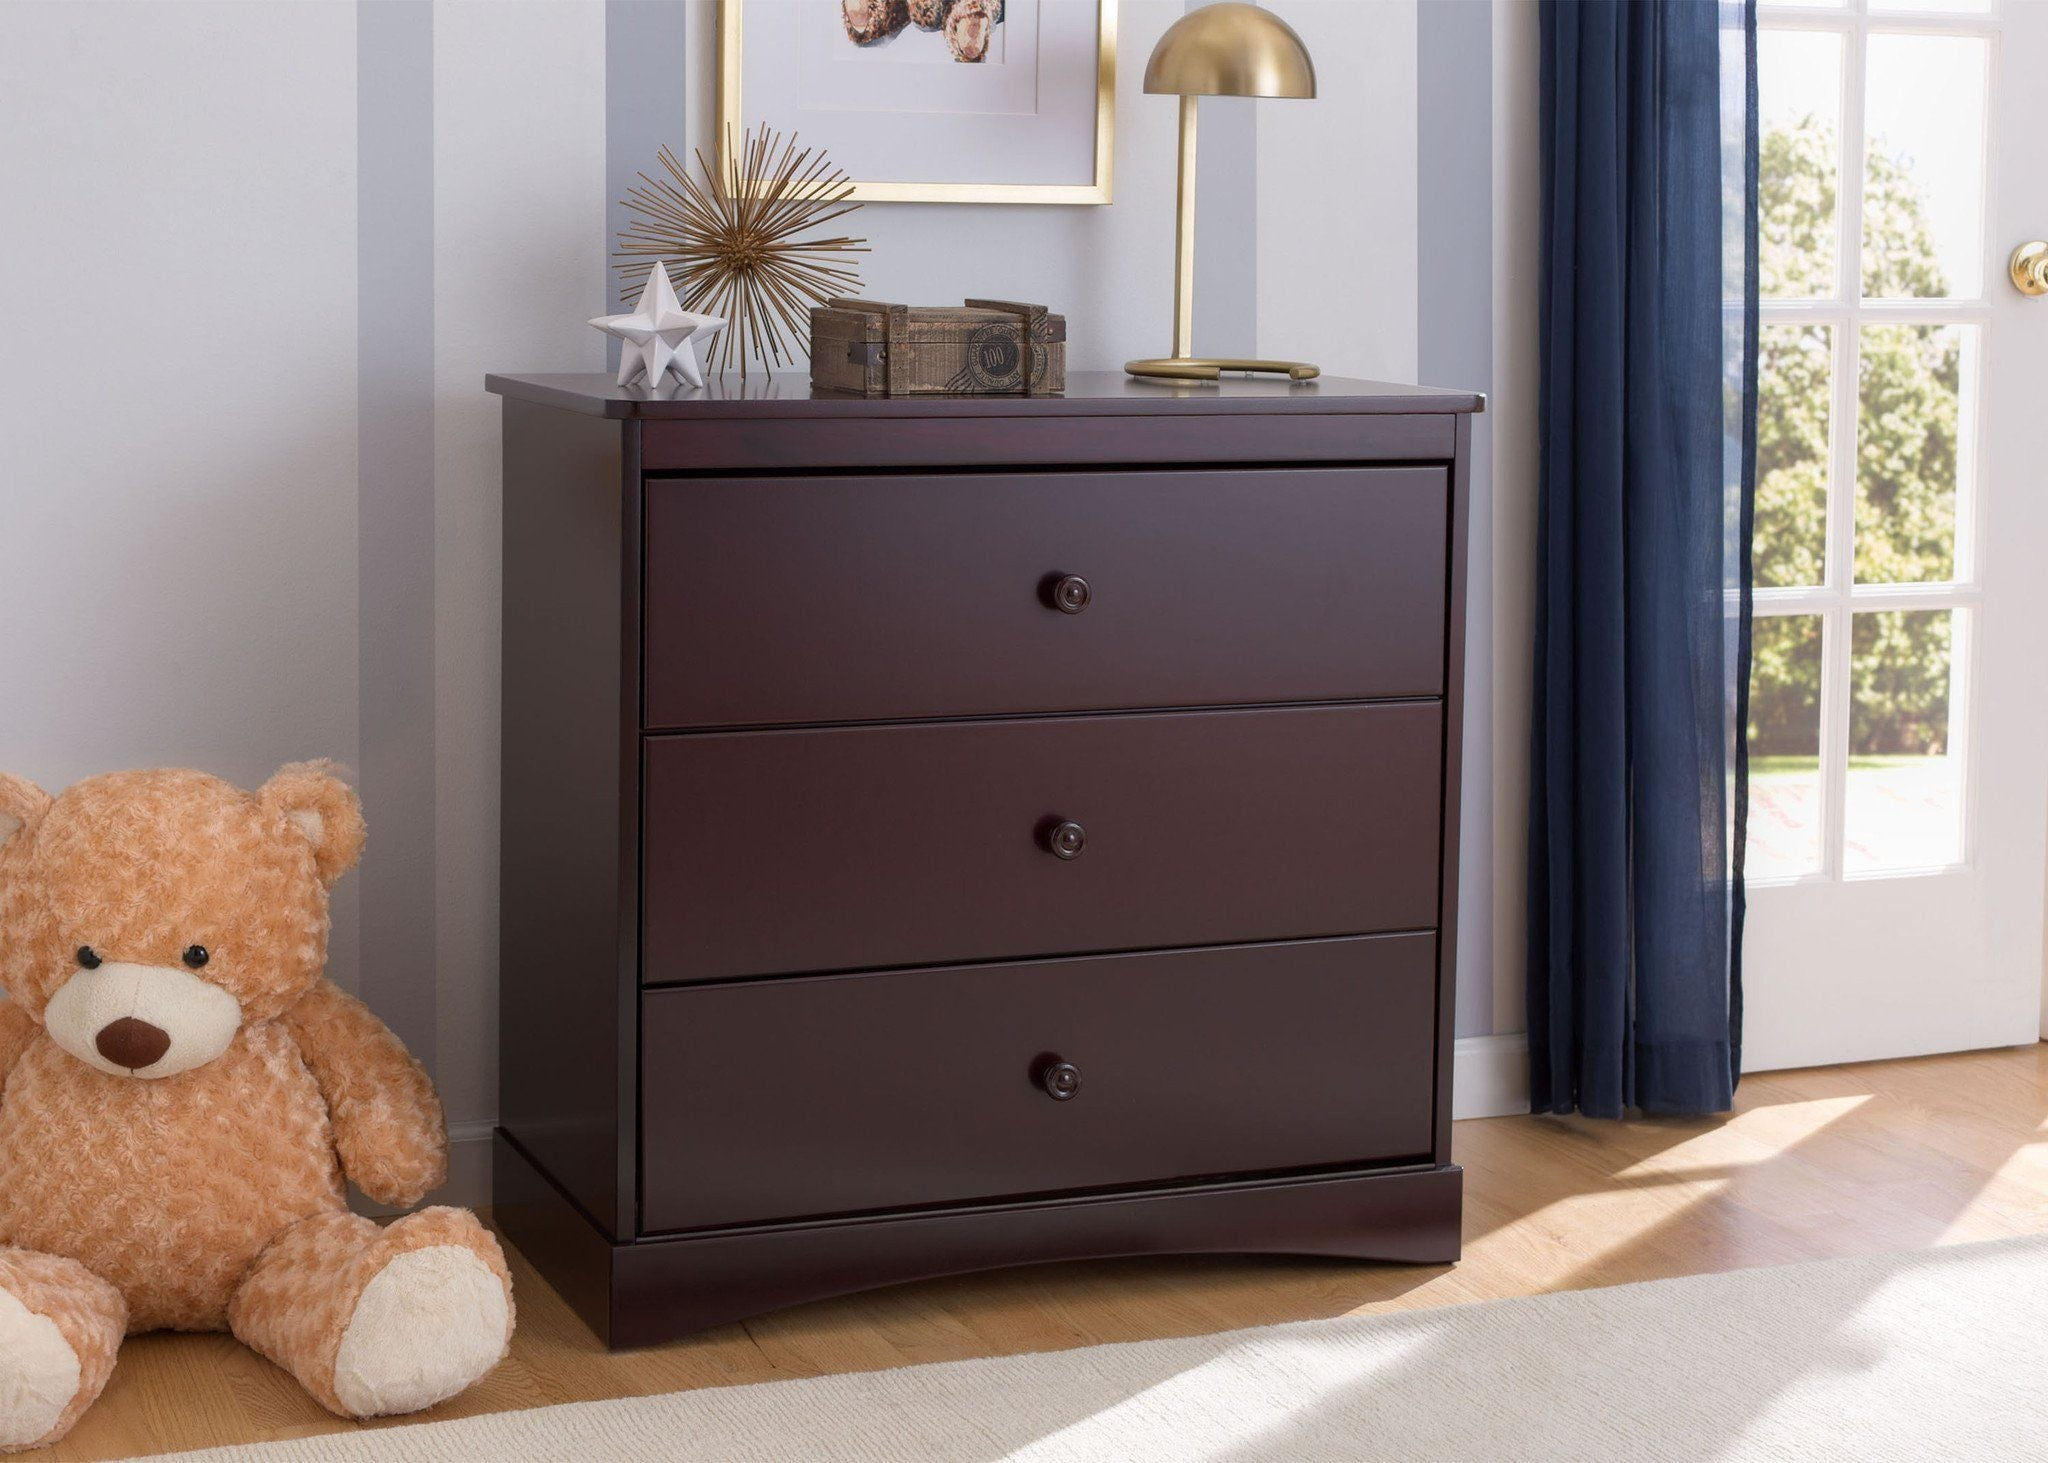 Delta Children Espresso Java (645) Sutton 3 Drawer Dresser room shot c1c